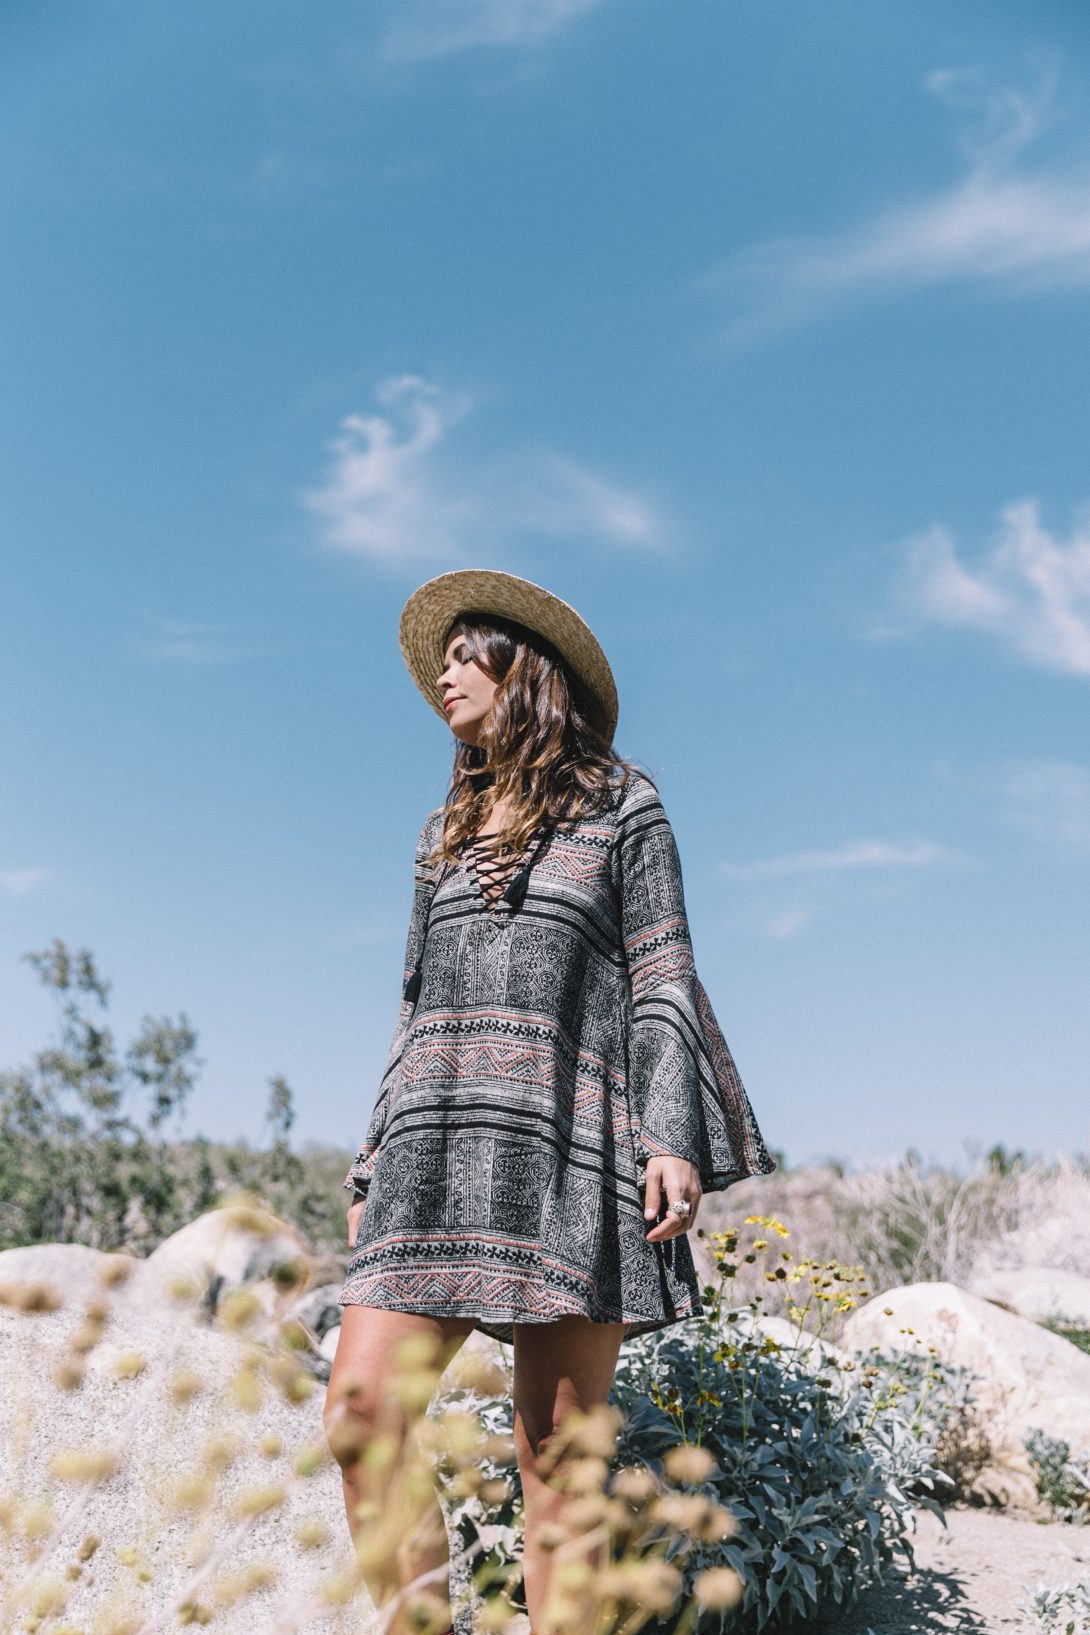 Boho_Dress-Lace_Up_Dress-Lack_of_Color-Revolve_Clothing-Straw_Hat-Soludos_Espadrilles-Palm_Springs-Outfit-Collage_Vintage-42